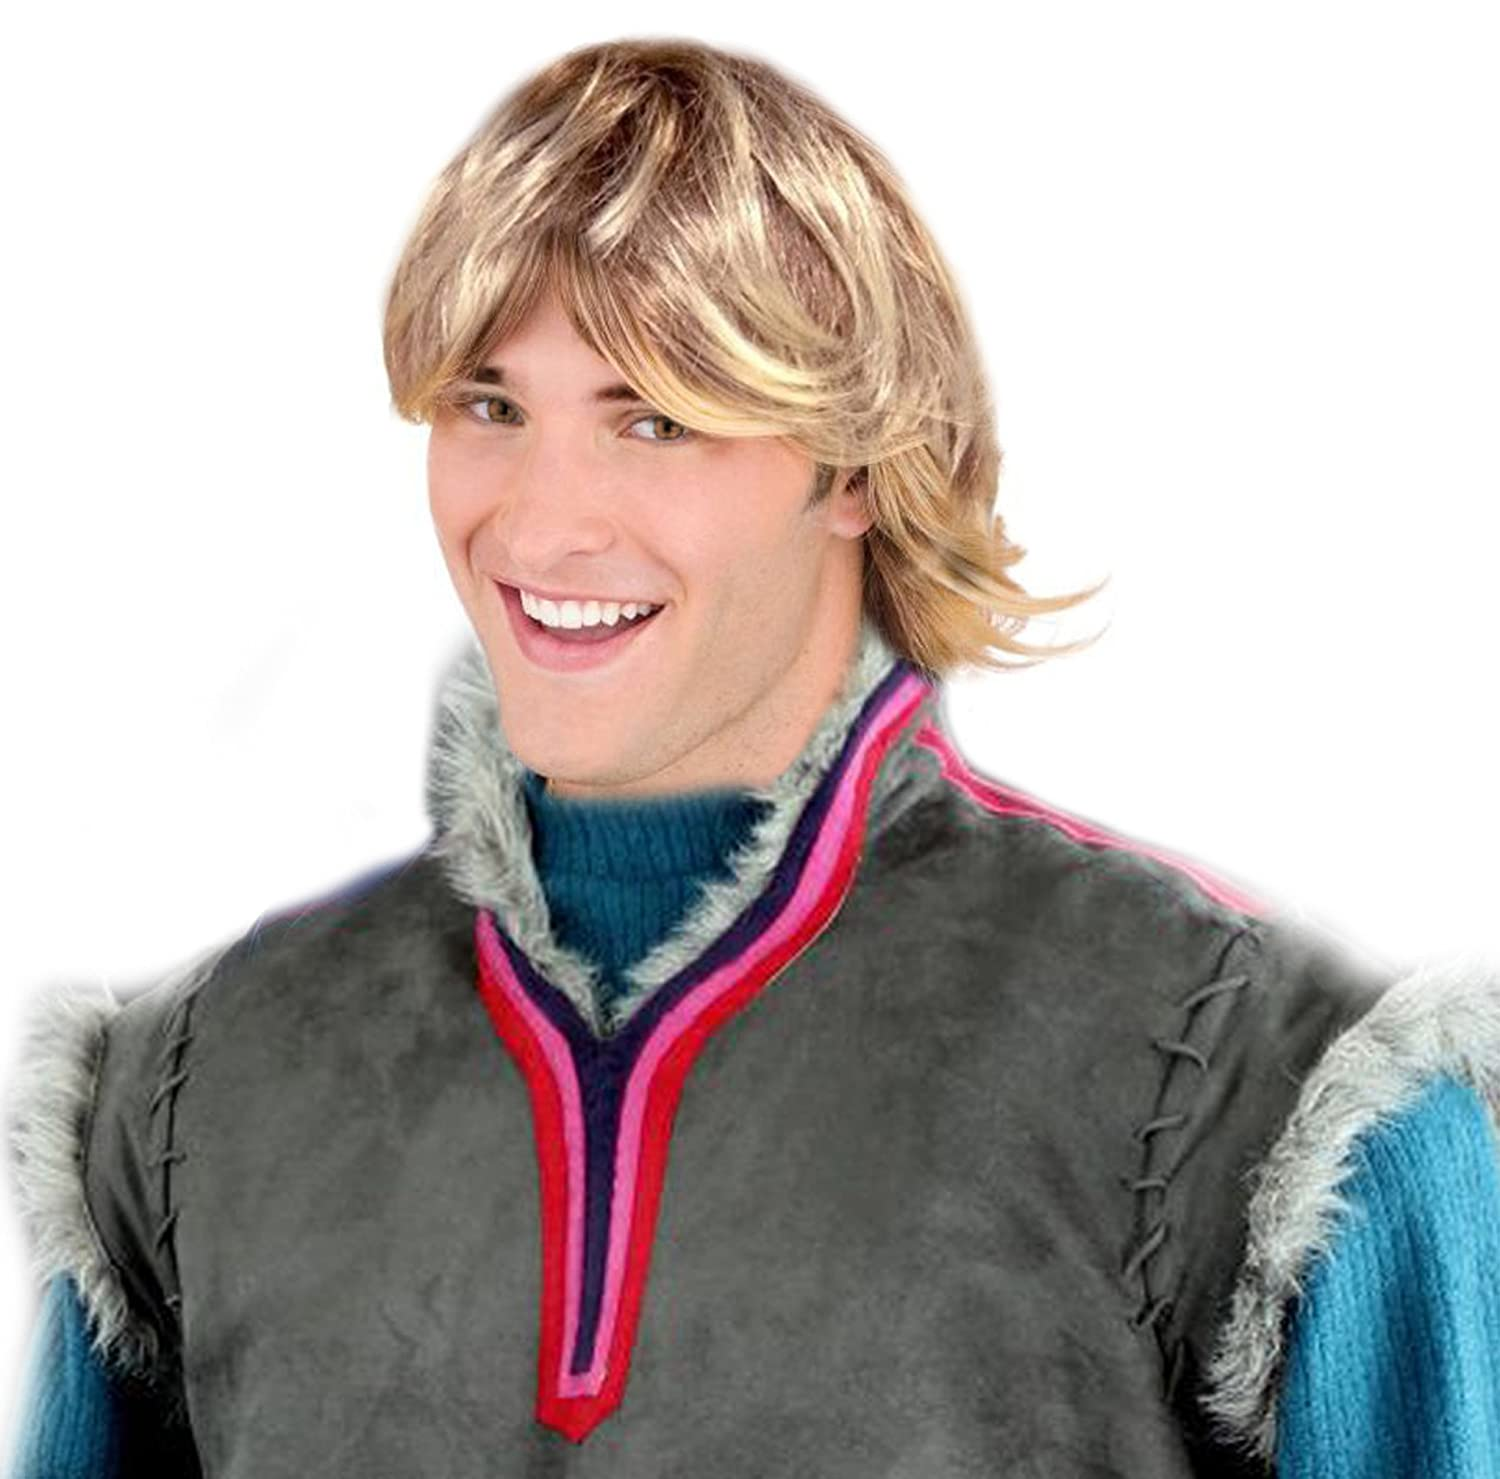 Amazon.com Clumsy Lover Boy kristoff Style Costume Wig kristoff Style Wig For Adults and Kids Clothing  sc 1 st  Amazon.com & Amazon.com: Clumsy Lover Boy kristoff Style Costume Wig kristoff ...